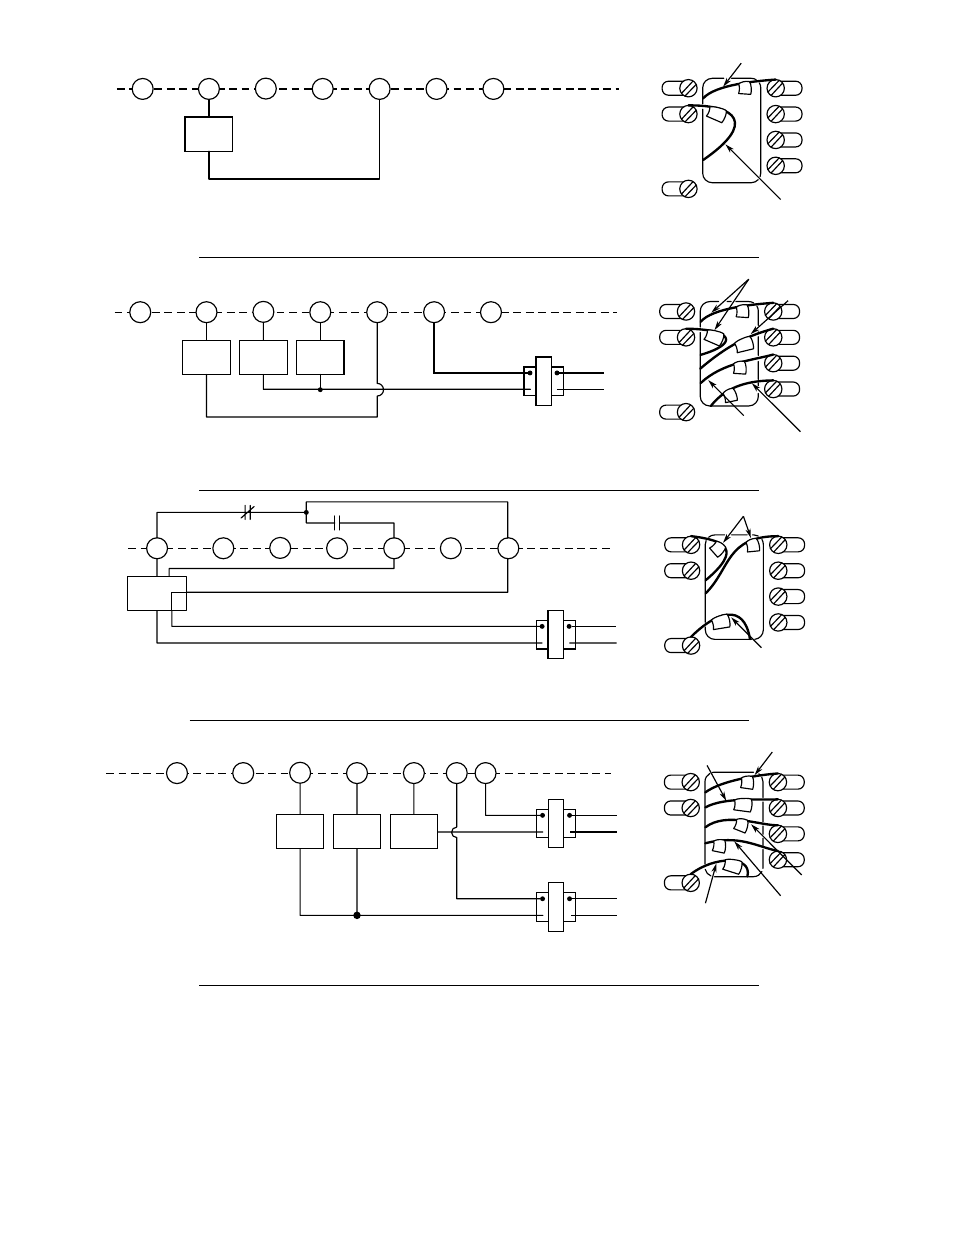 white rodgers zone valves wiring diagram for multi honeywell gas valve parts diagram wiring White Rodgers Gas Valve Cross Reference White Rodgers Gas Valve Recall